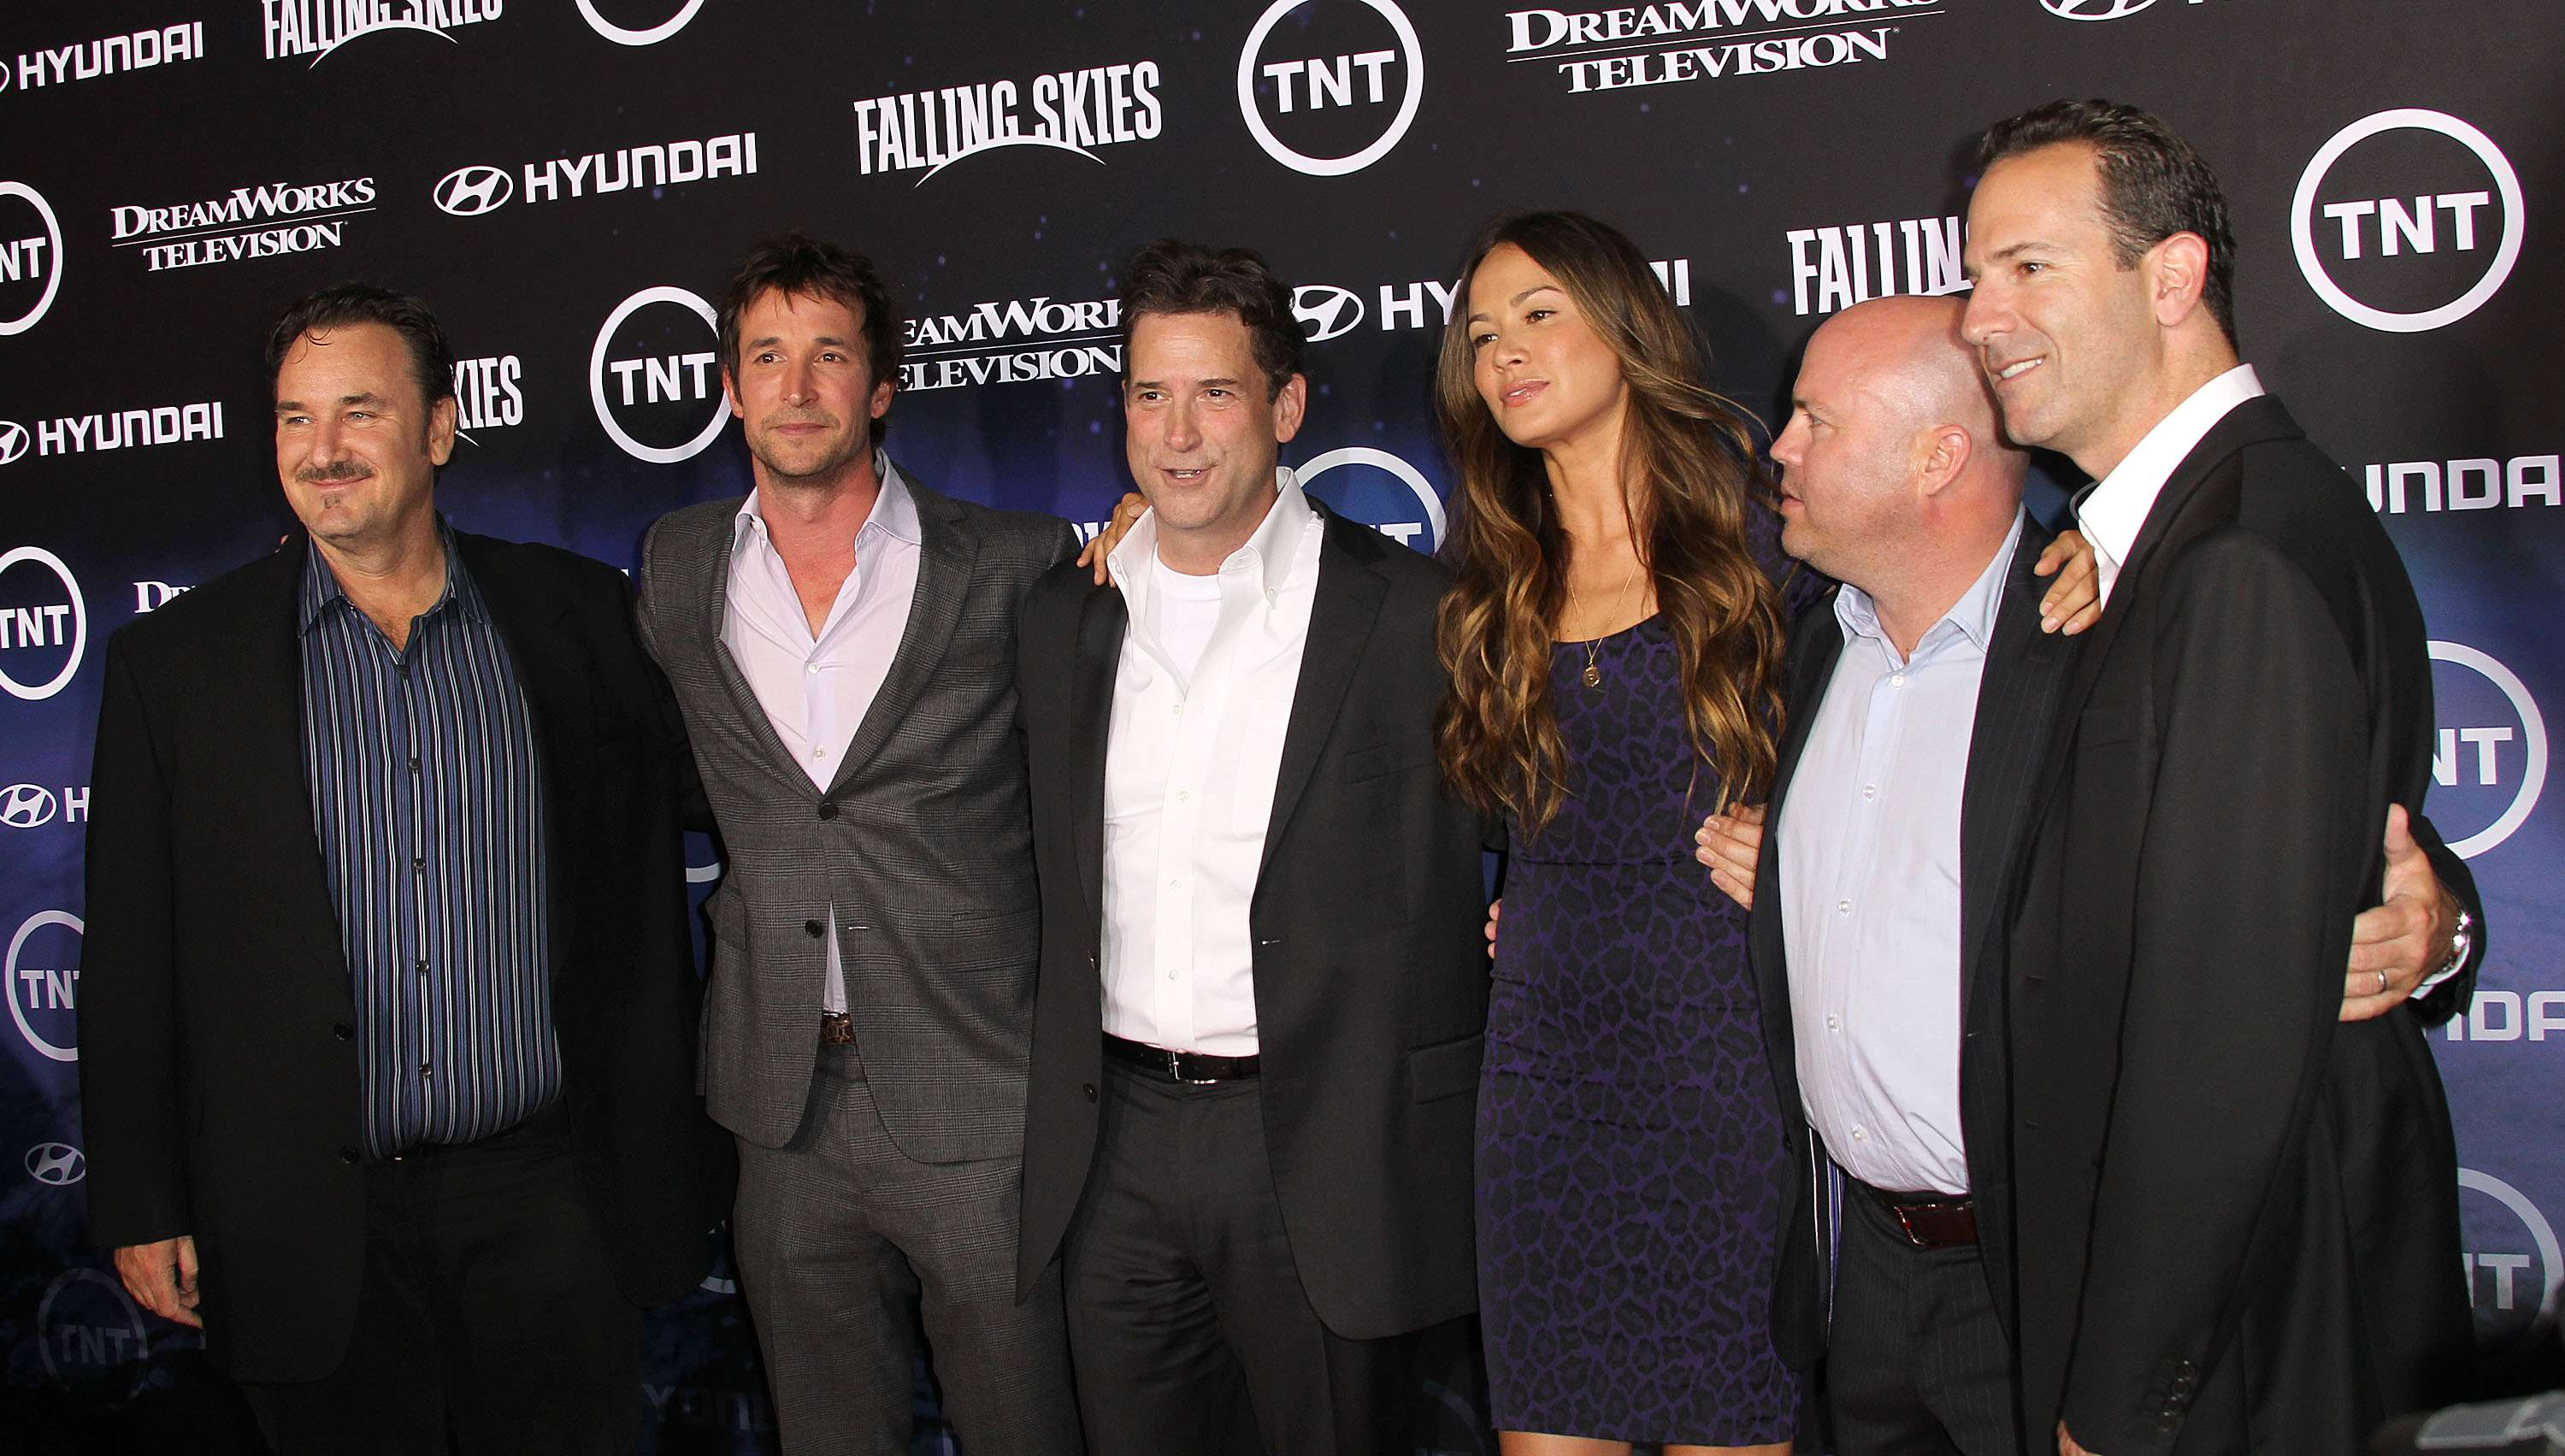 Elenco de 'Falling Skies' Foto: Frederick M. Brown/Getty Images